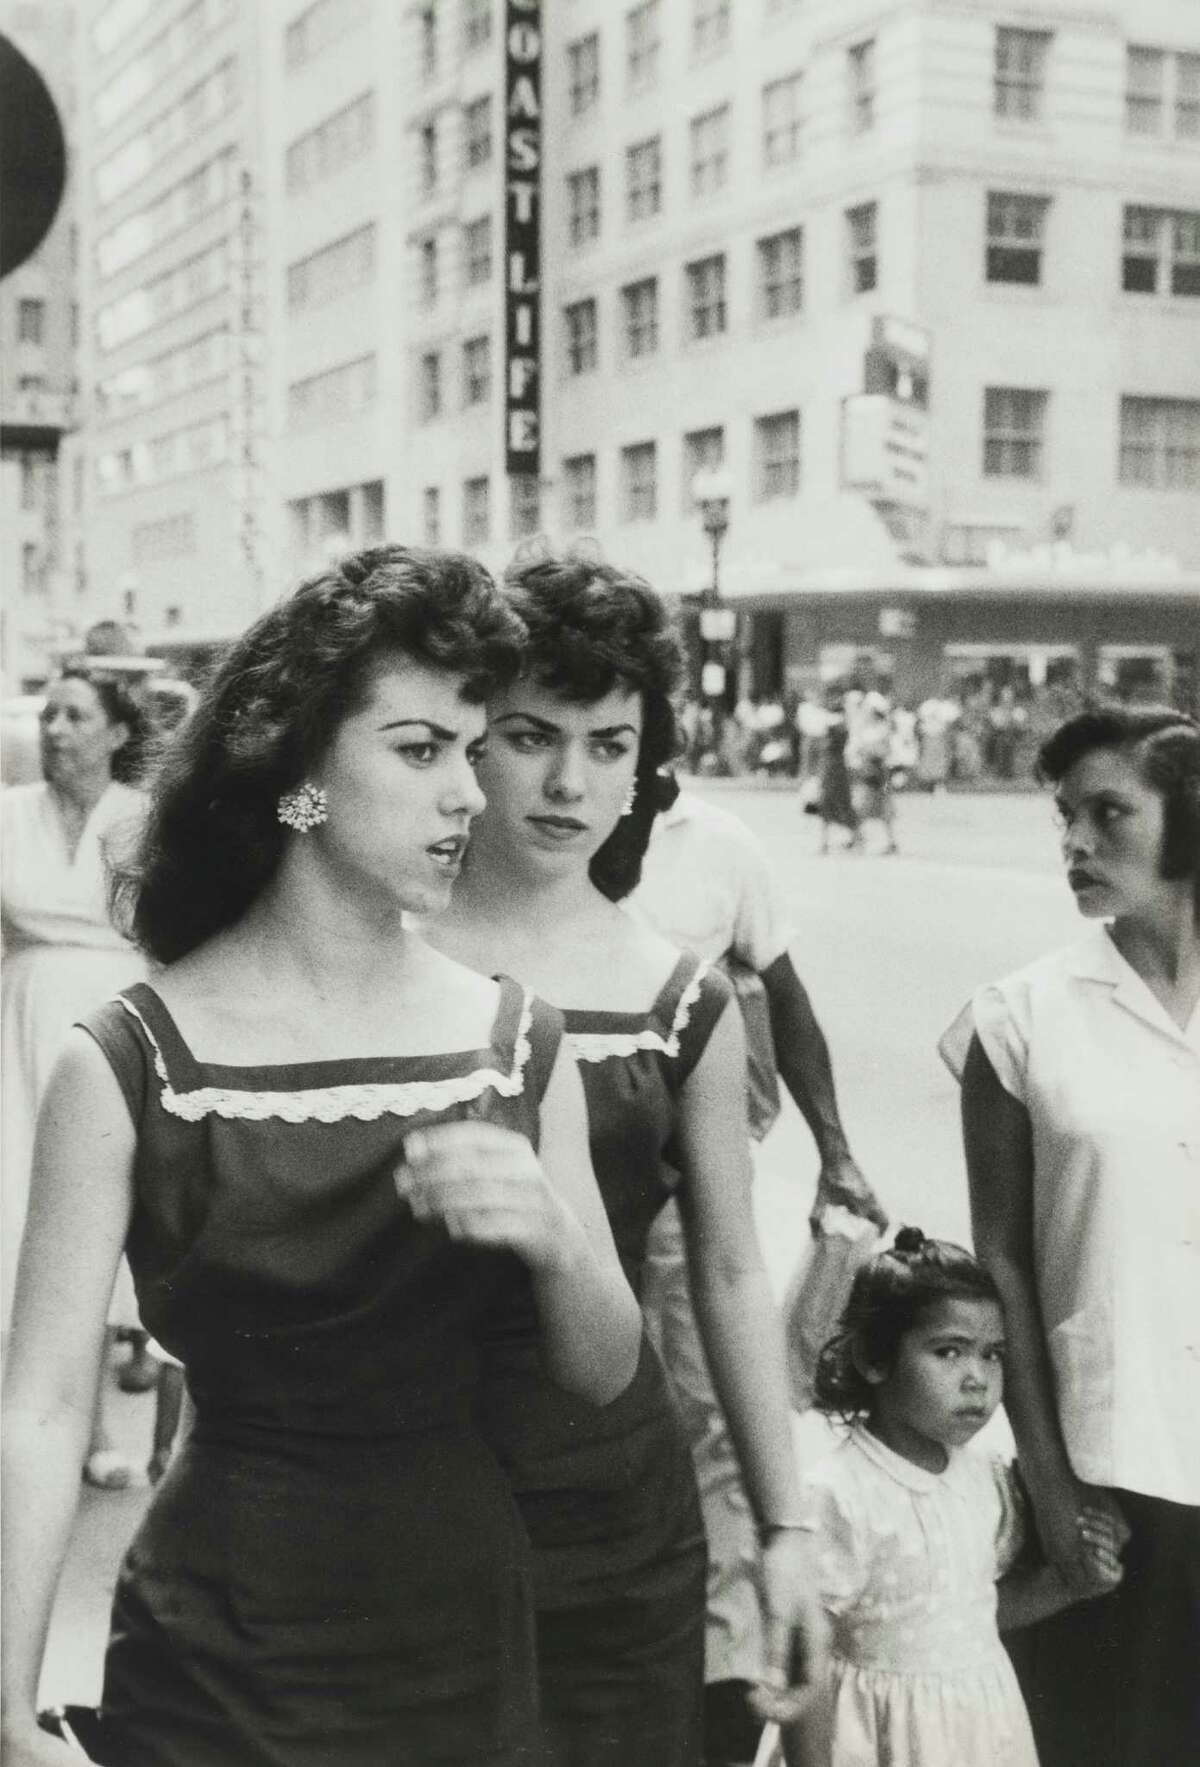 """""""Twins on Street, Downtown,"""" 1957, by photographer Henri-Cartier Bresson. The photo is part of the Menil Collection show """"Life is Once, Forever: Henri Cartier-Bresson Photographs."""""""